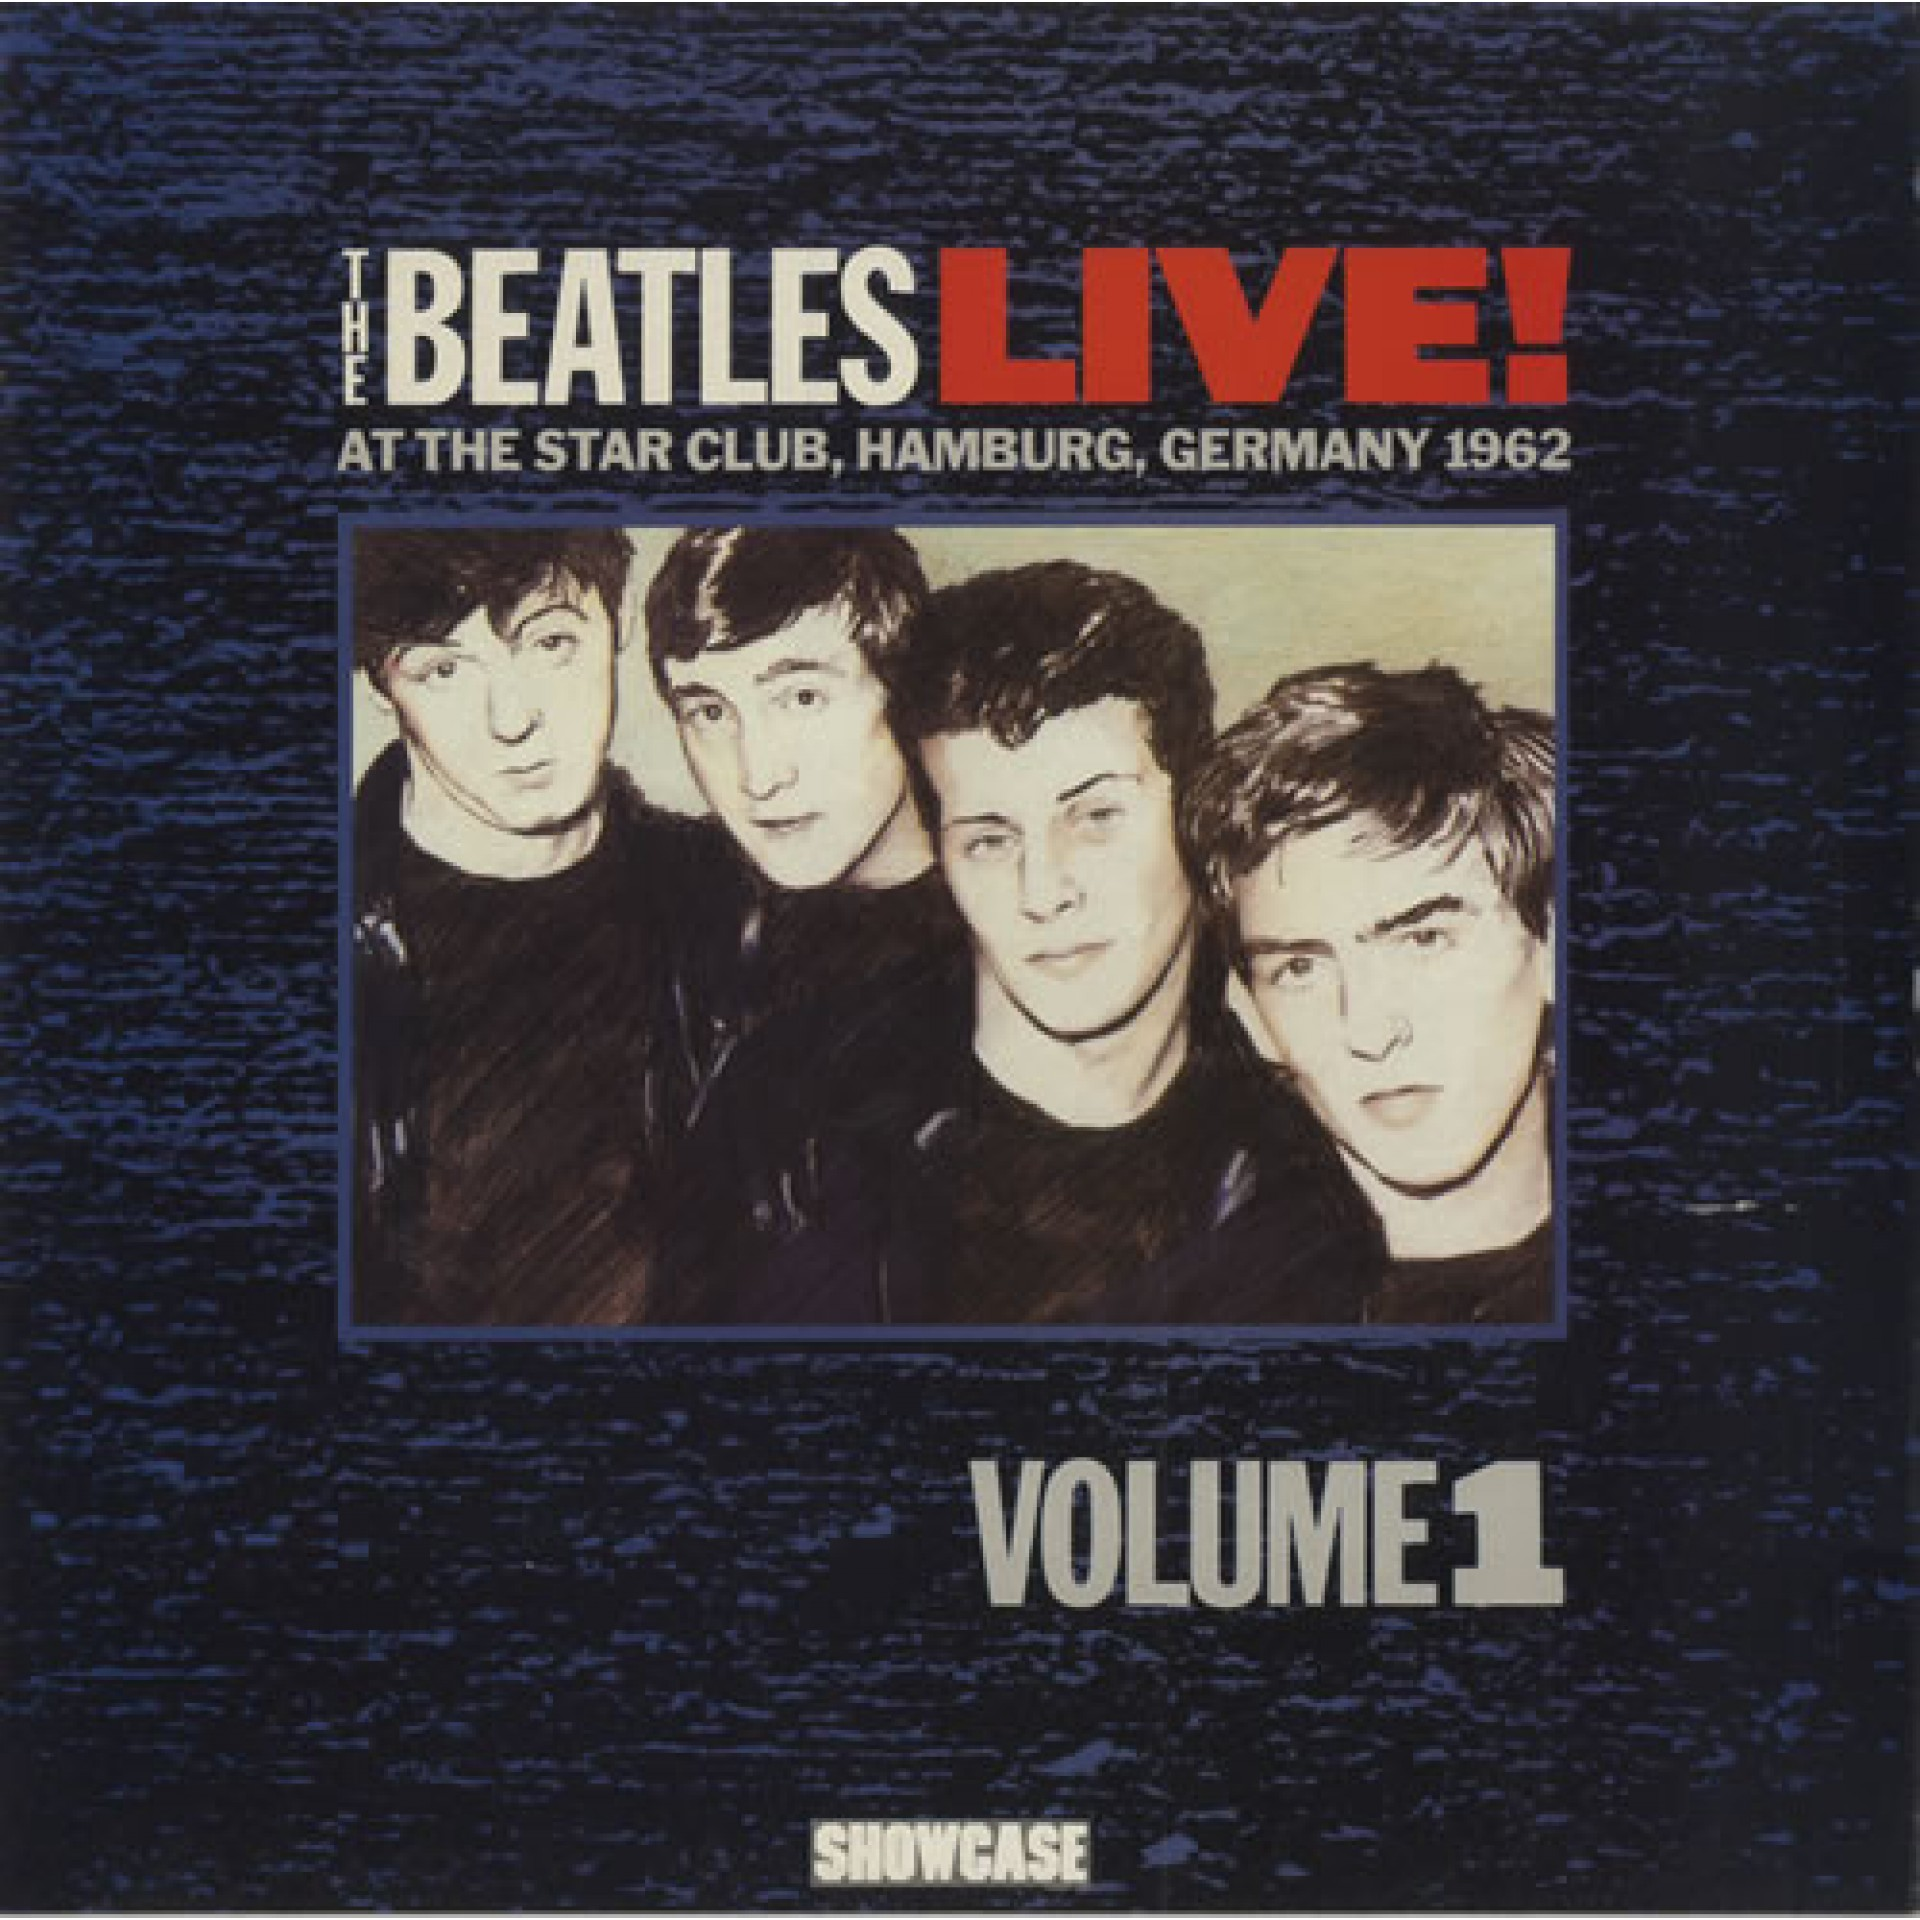 lp the beatles live at the star club in hamburg germany 1962